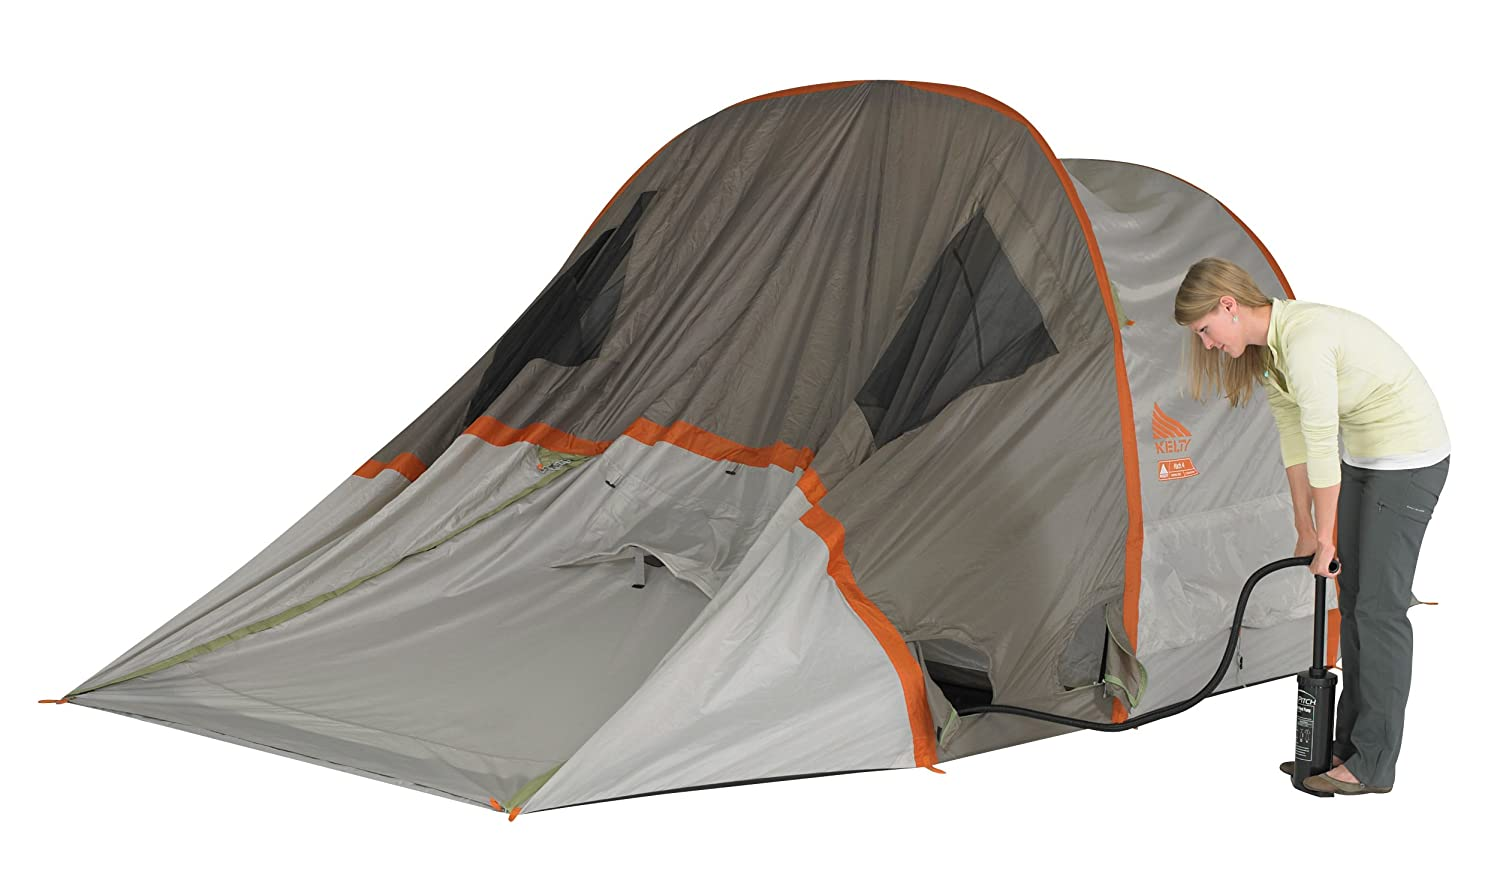 Amazon.com  Kelty Mach 4 AirPitch Tent with Footprint Bundle - One Size Grey  Sports u0026 Outdoors  sc 1 st  Amazon.com & Amazon.com : Kelty Mach 4 AirPitch Tent with Footprint Bundle ...